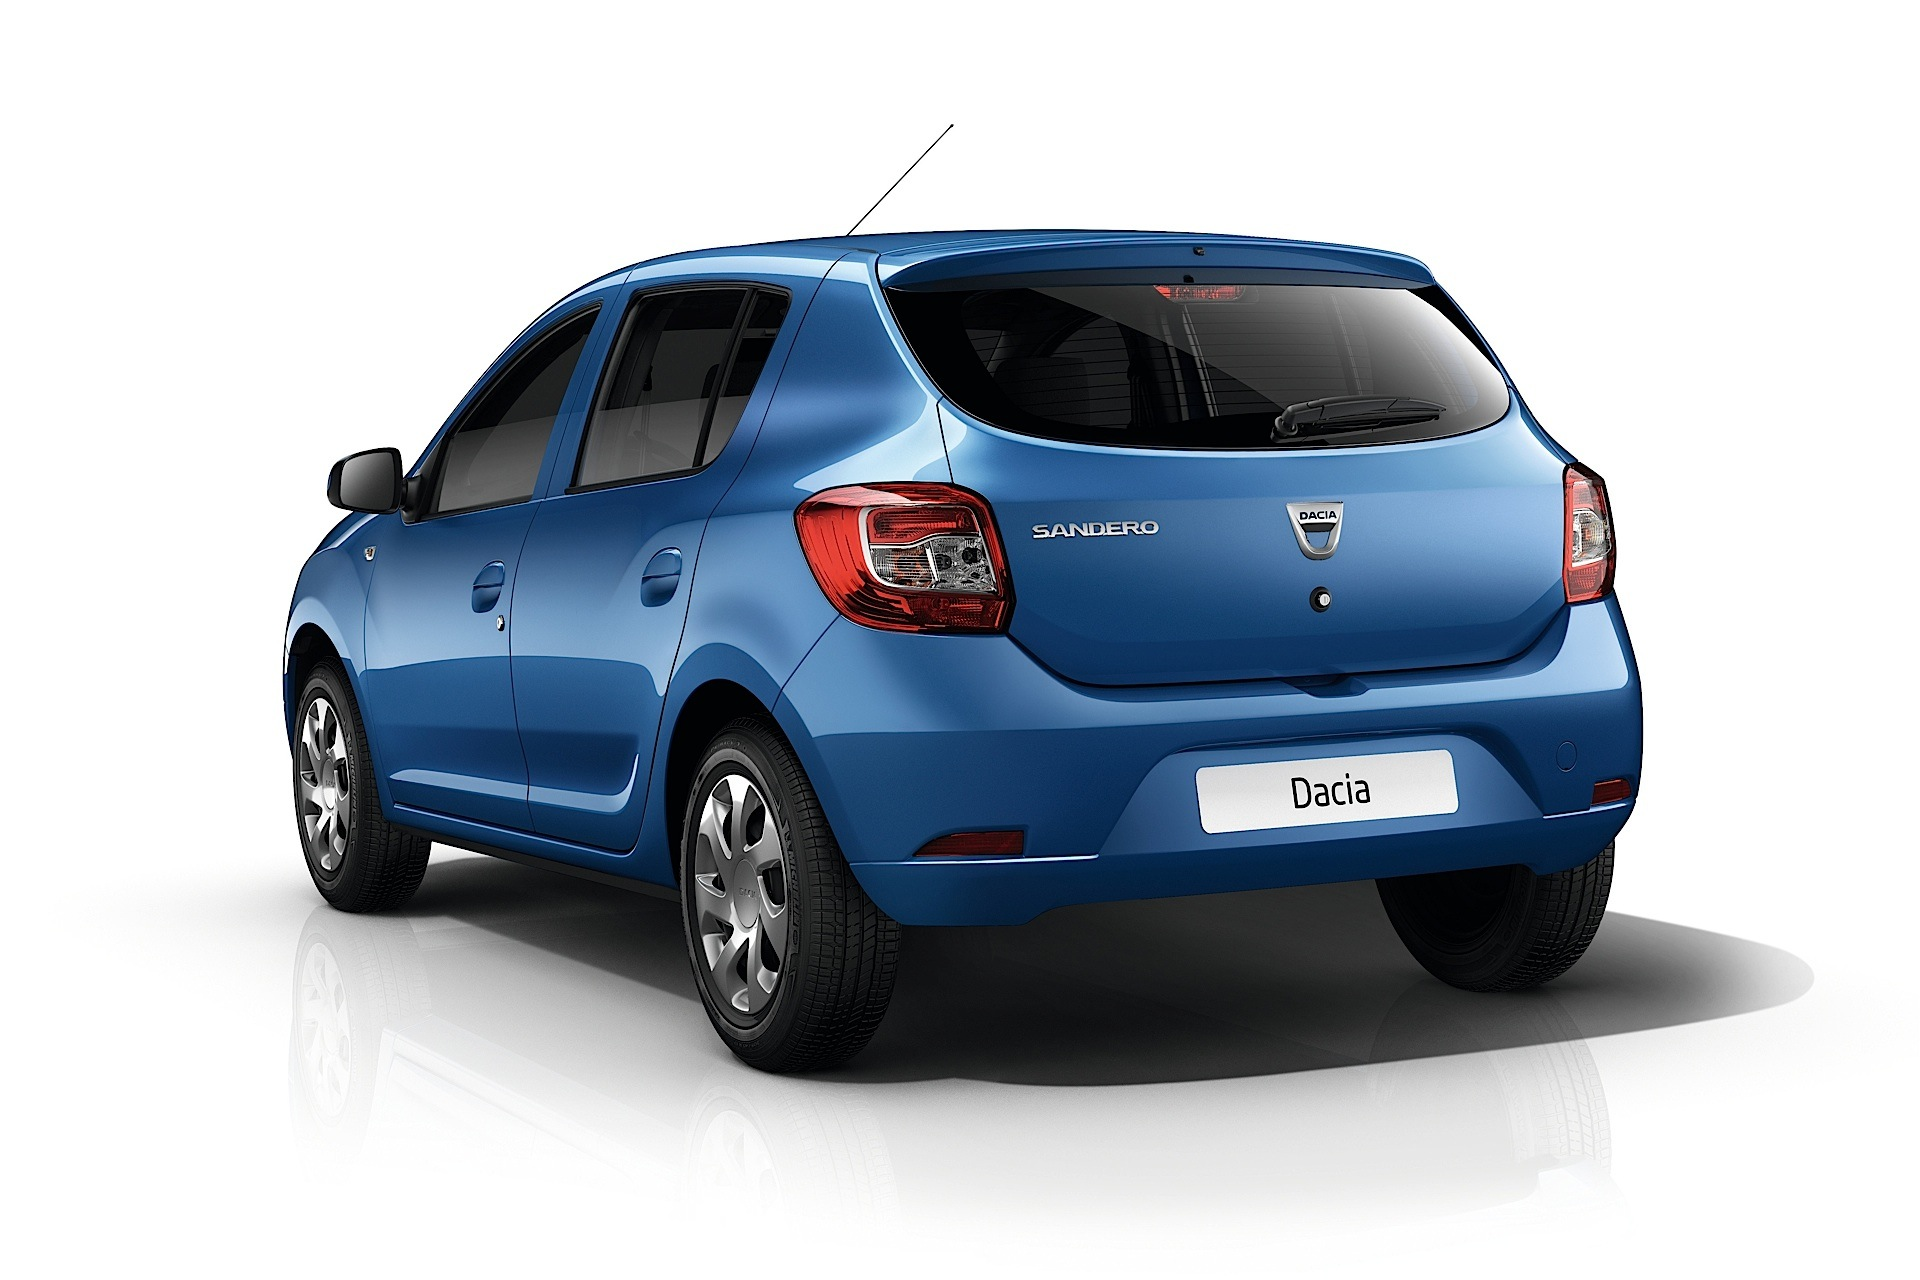 dacia sandero 2 specs 2012 2013 2014 2015 2016 autoevolution. Black Bedroom Furniture Sets. Home Design Ideas